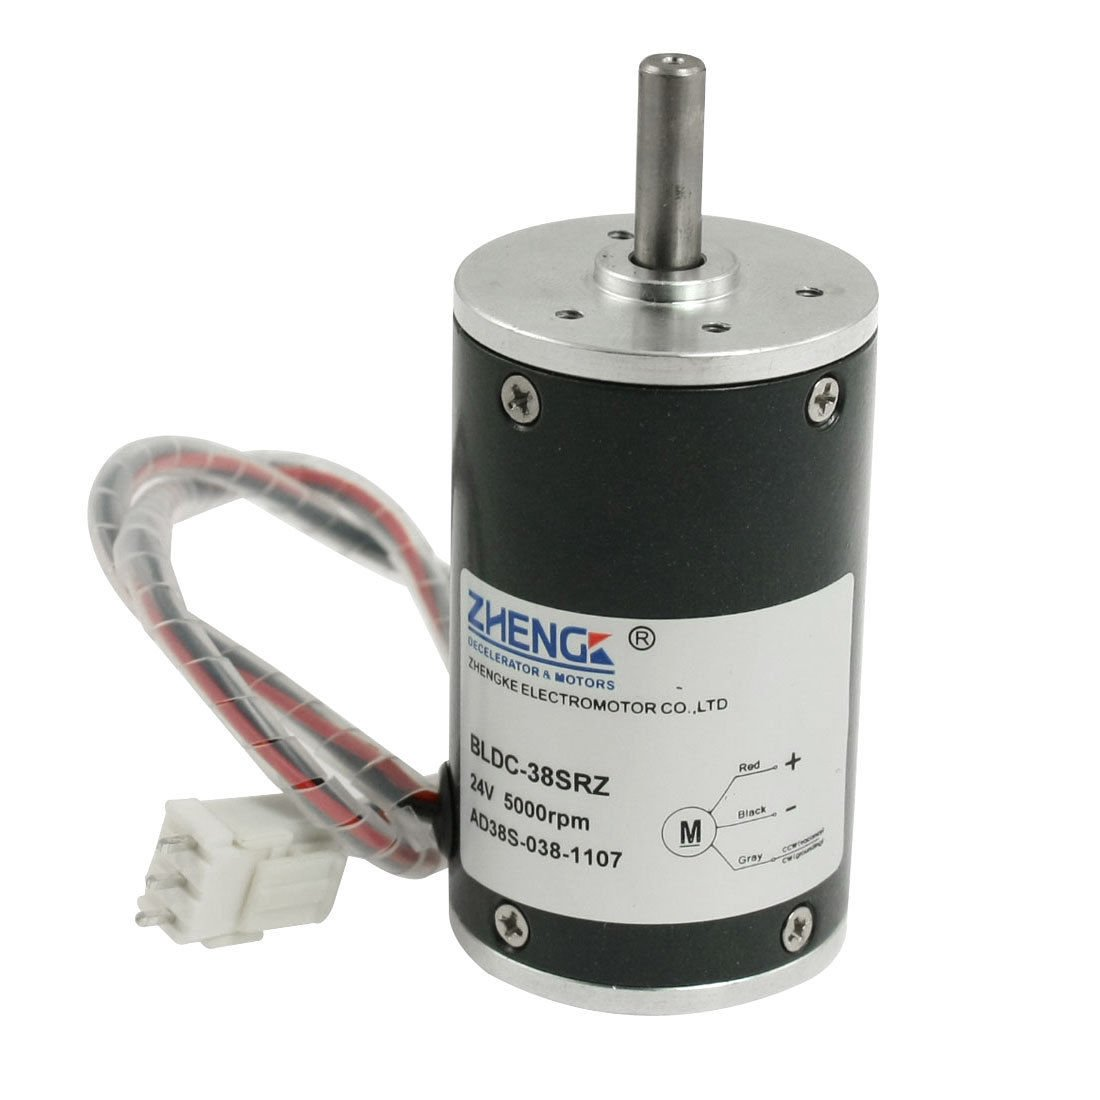 DC 24V 5000RPM 0.73A 300G.cm Brushless Speed Control Motor